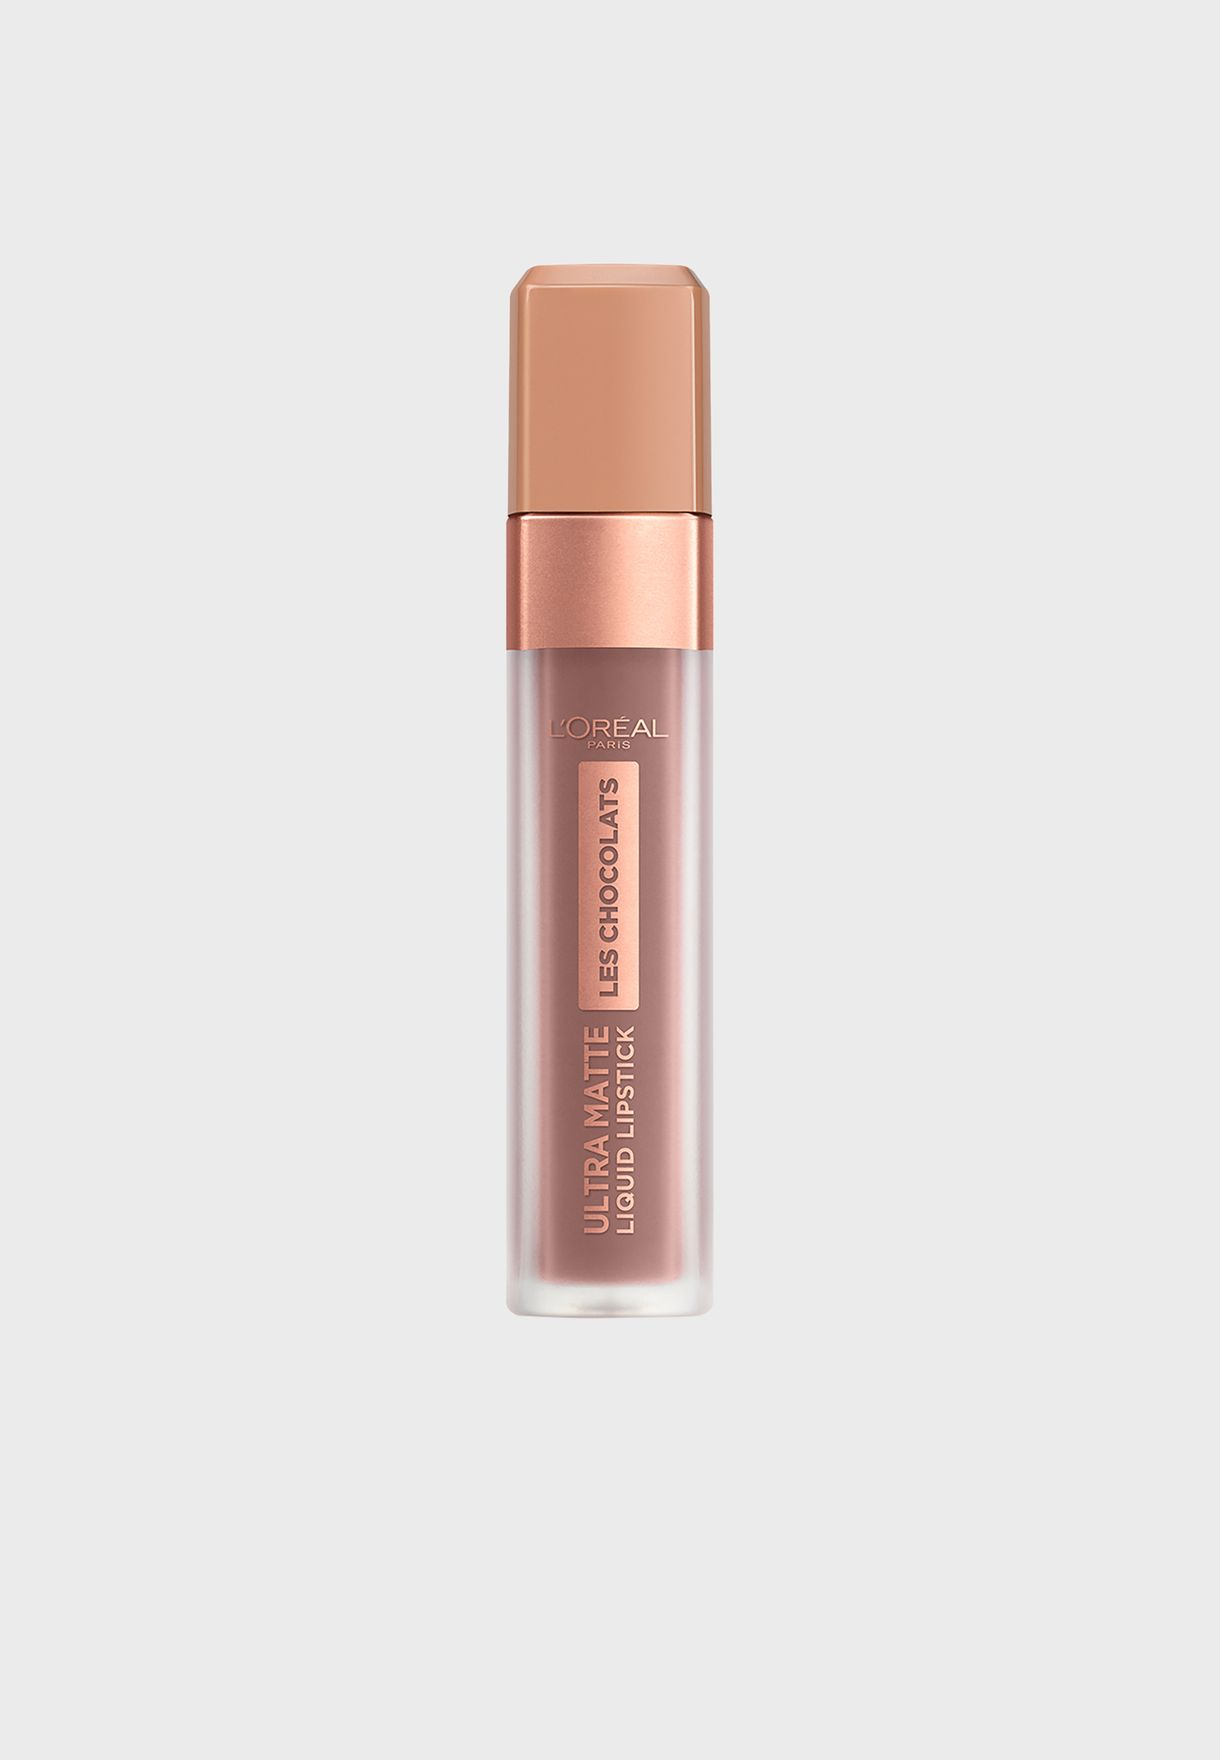 Oh my Choc! Chocolates Lipstick 858